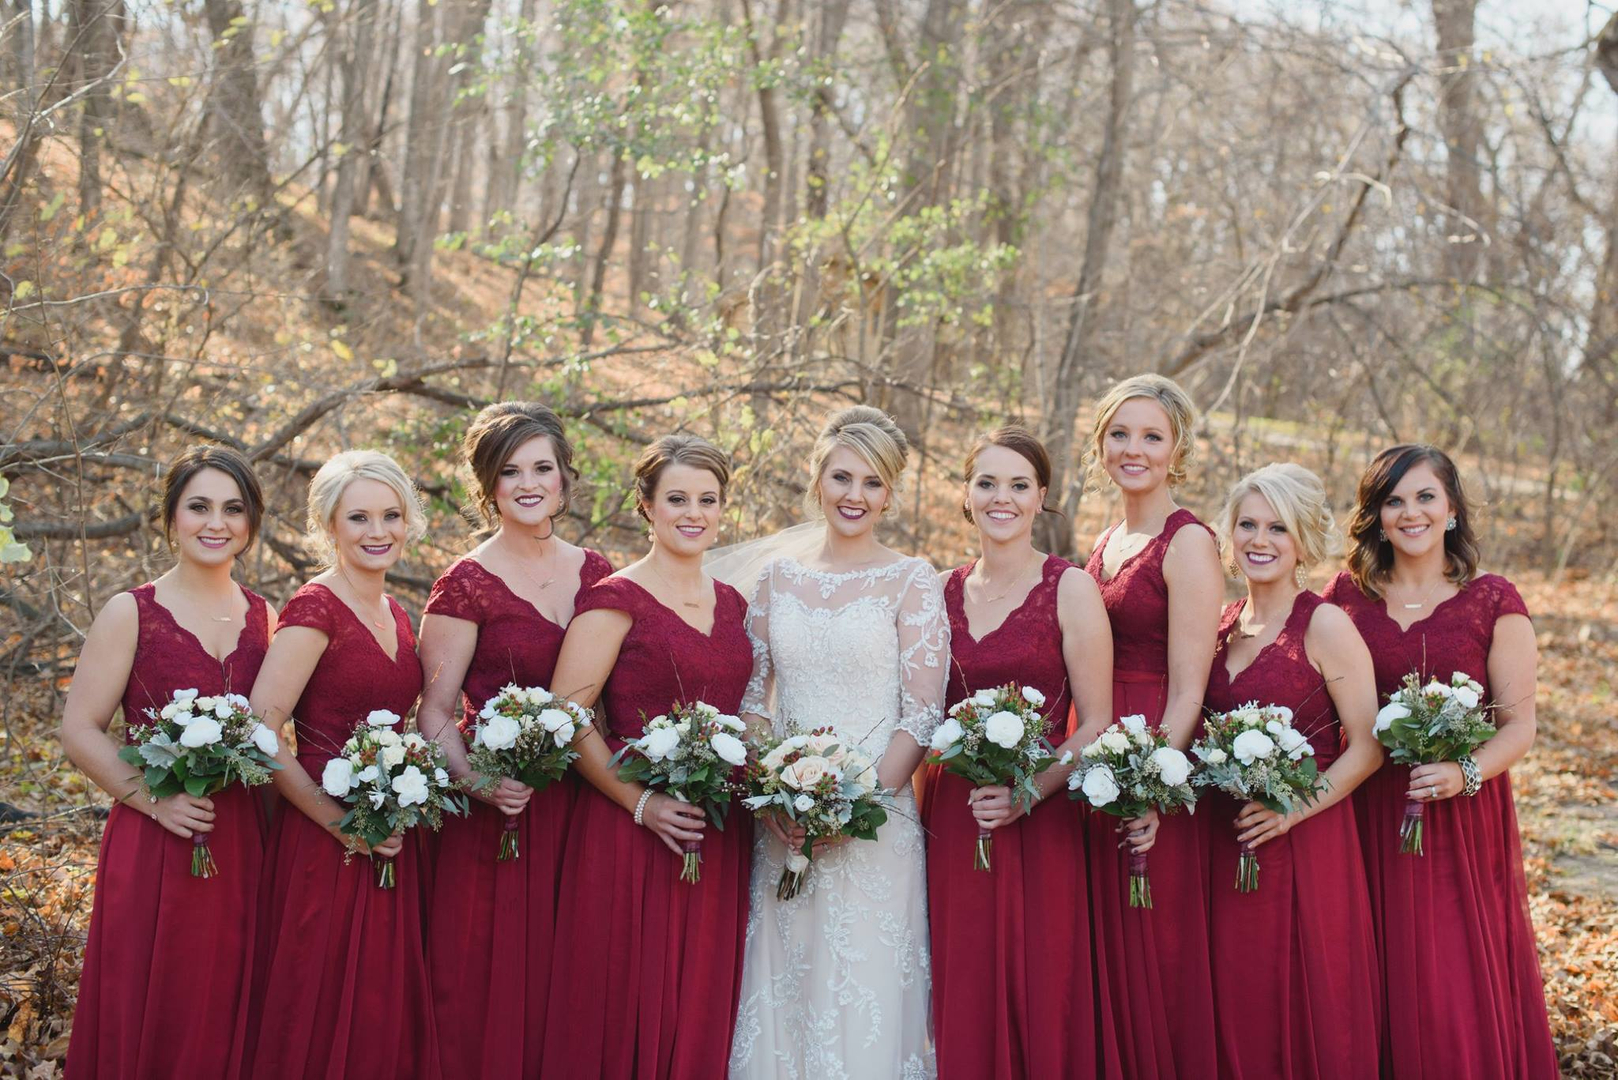 f725a7ccb87 Bridesmaid Dresses In Mankato Mn - Data Dynamic AG